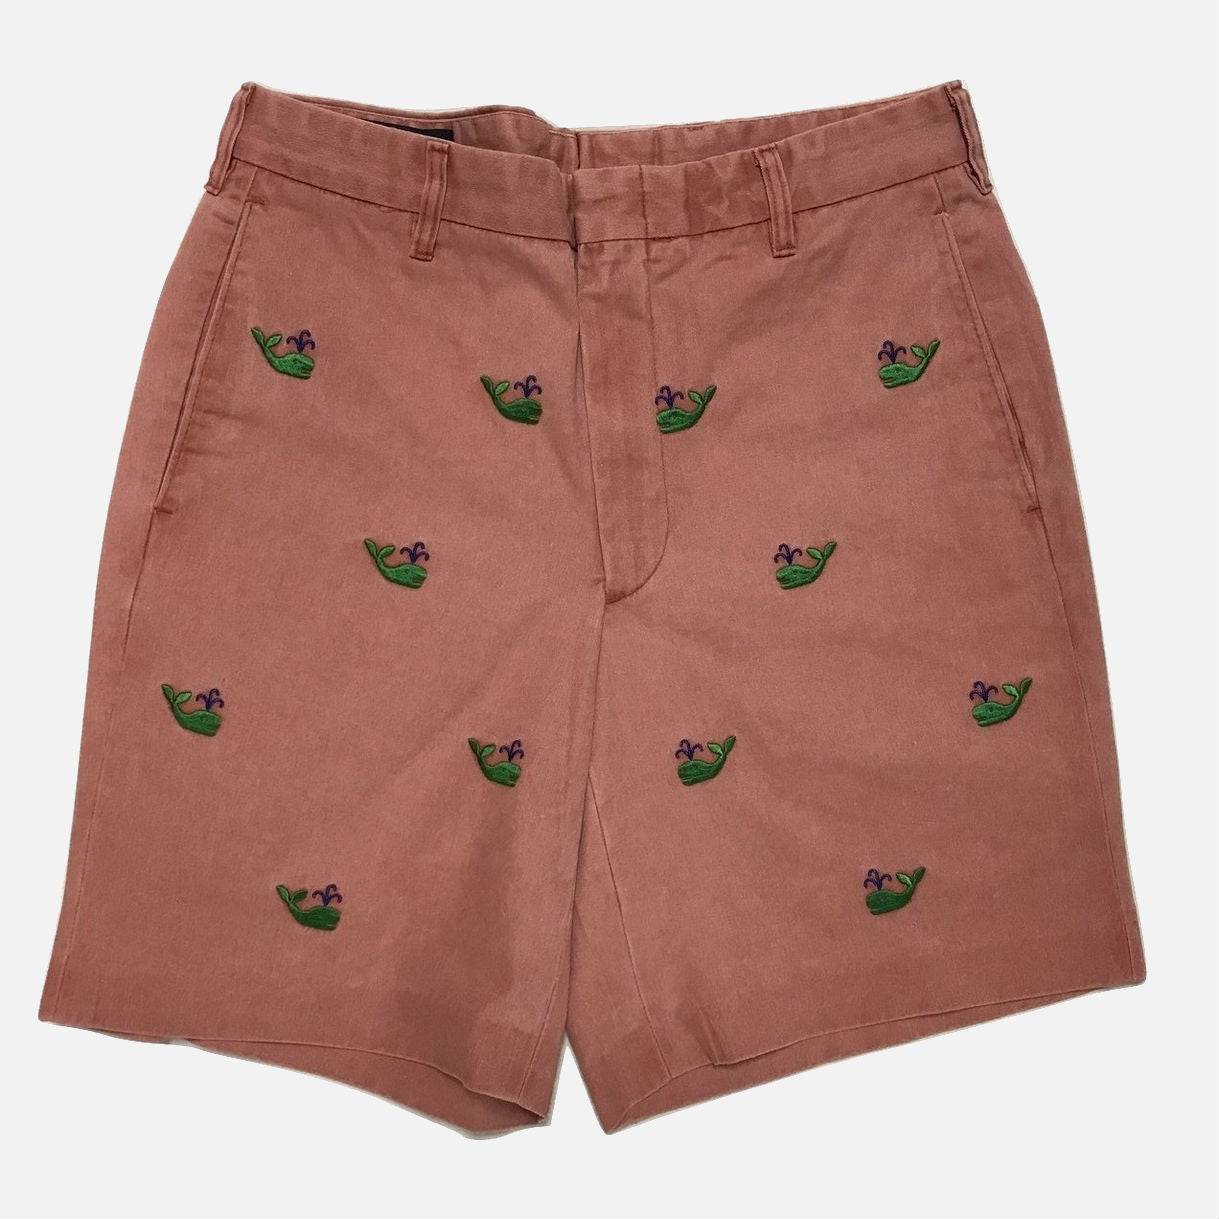 Nantucket Reds™ M Crest Collection Men's Straight Fit Embroidered Green Whale Shorts